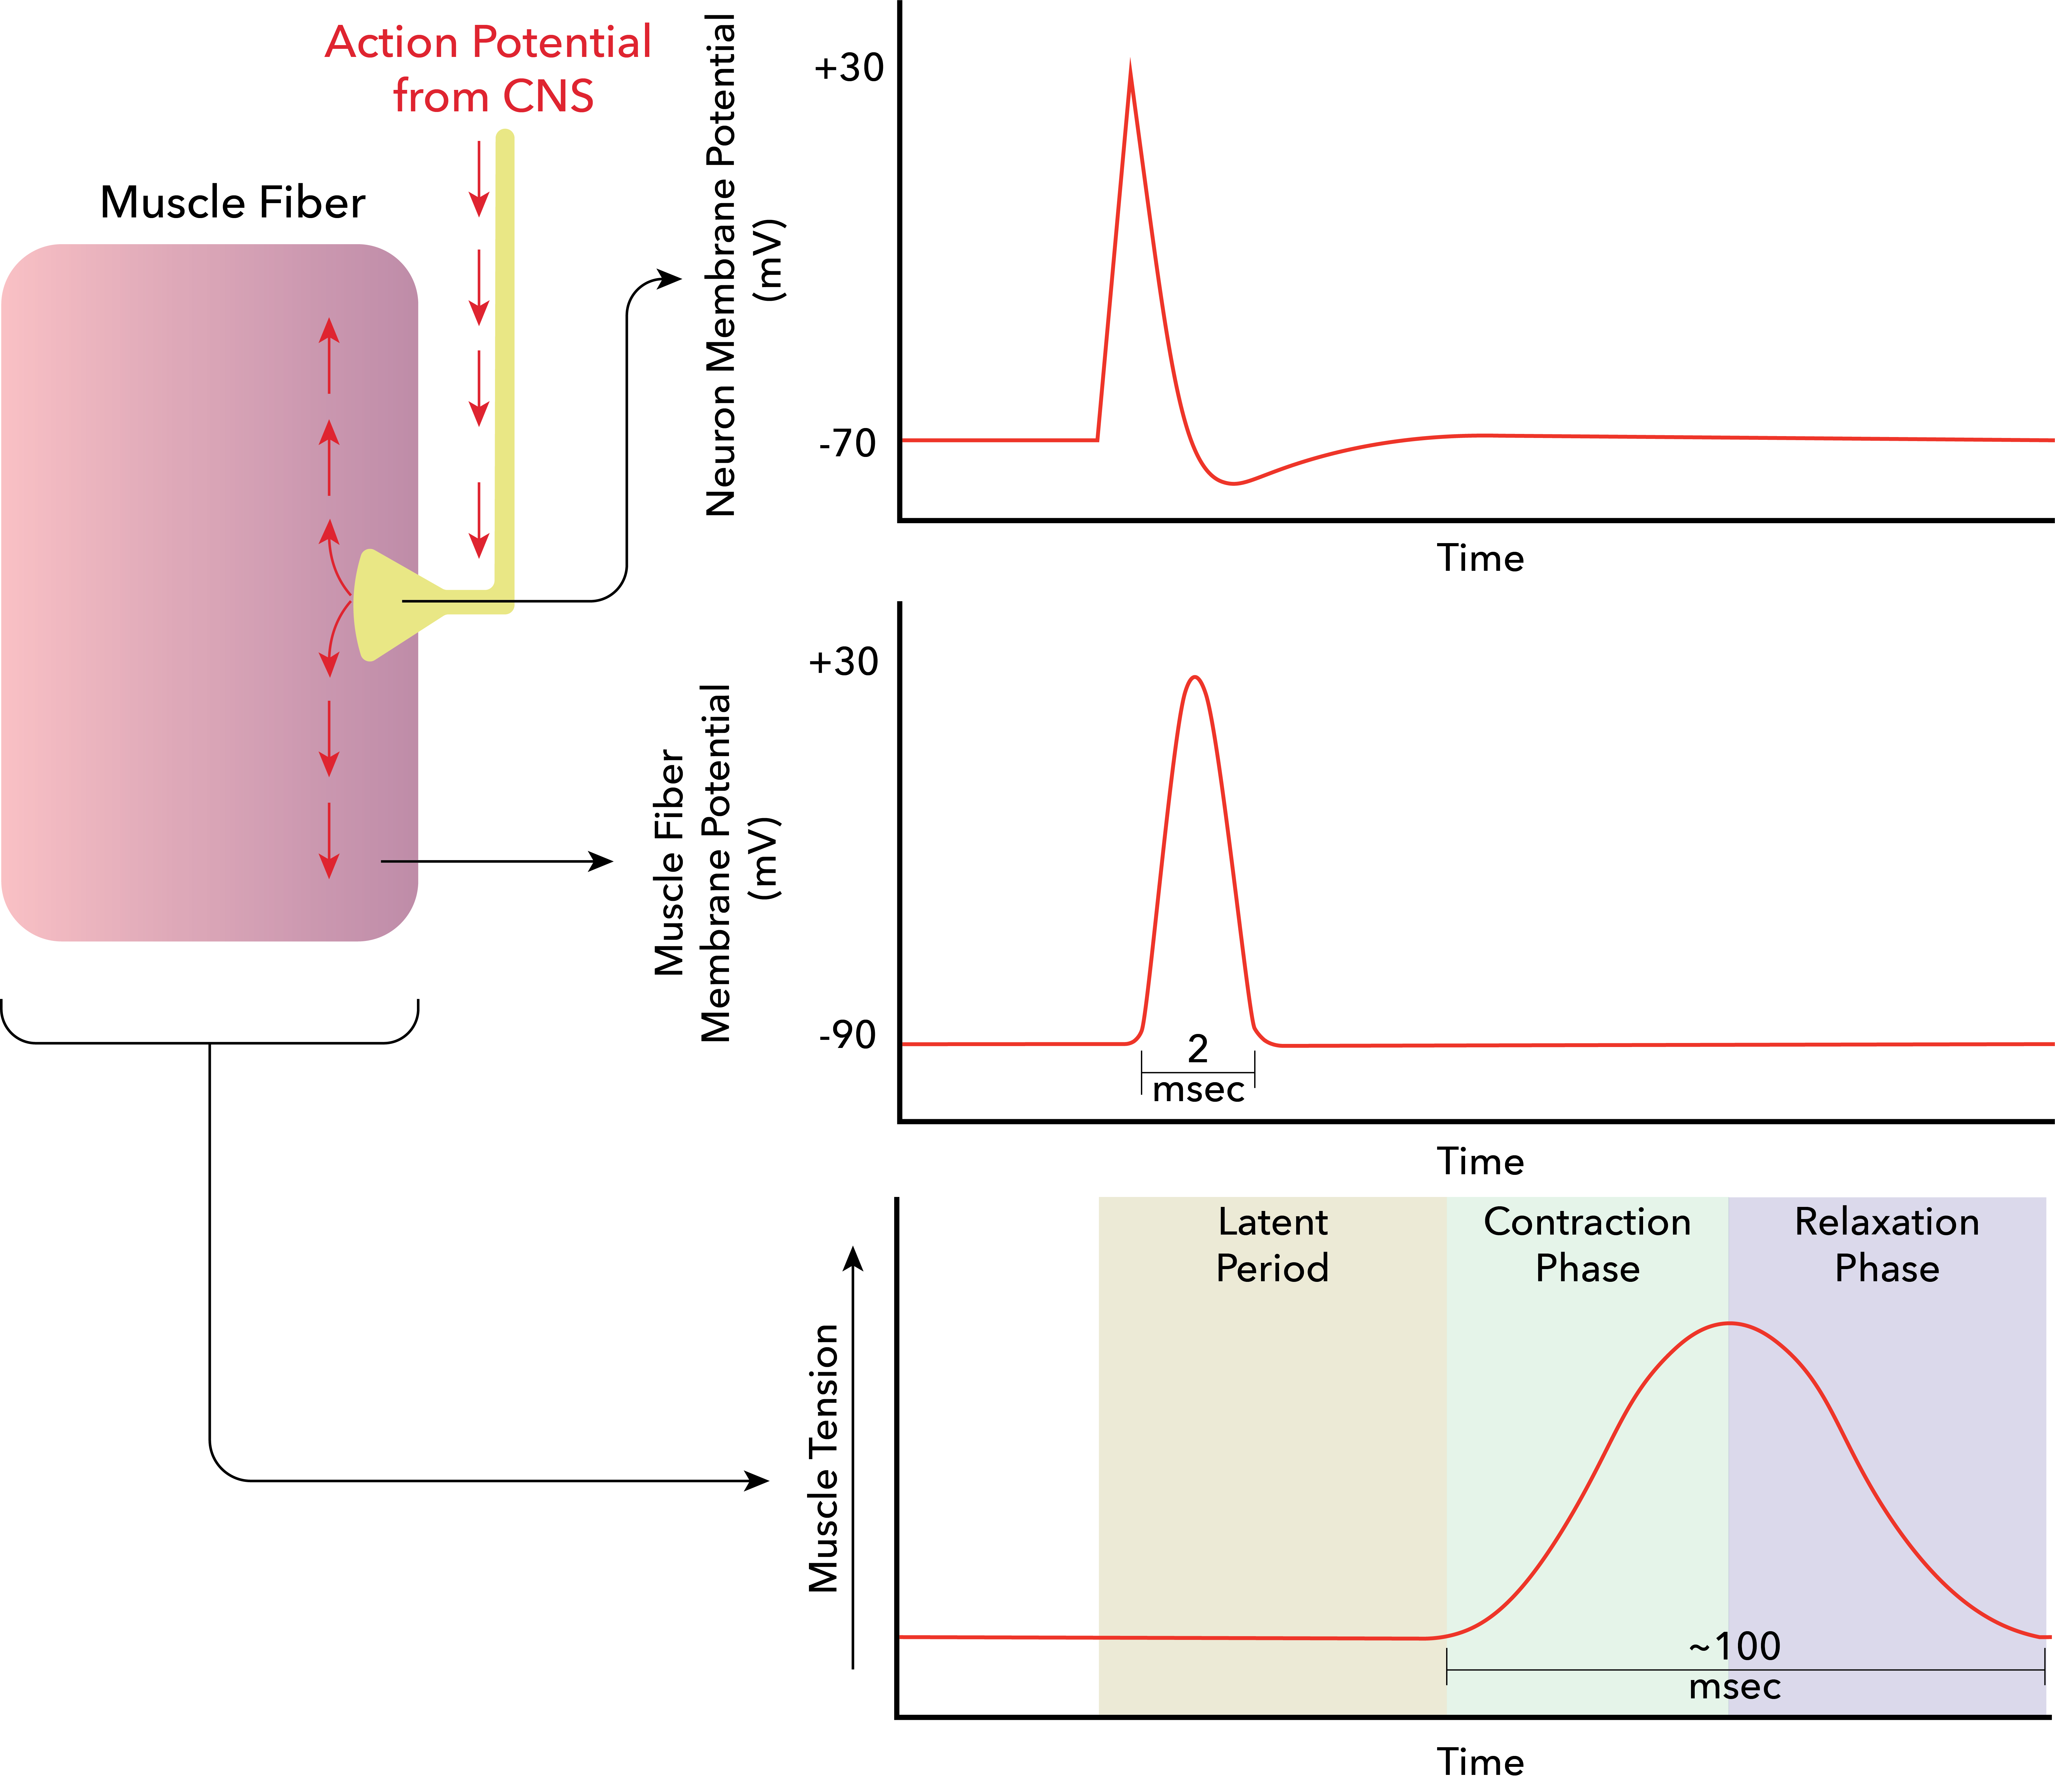 Action Potential Png - File:The latent period between the muscle action potential and ...